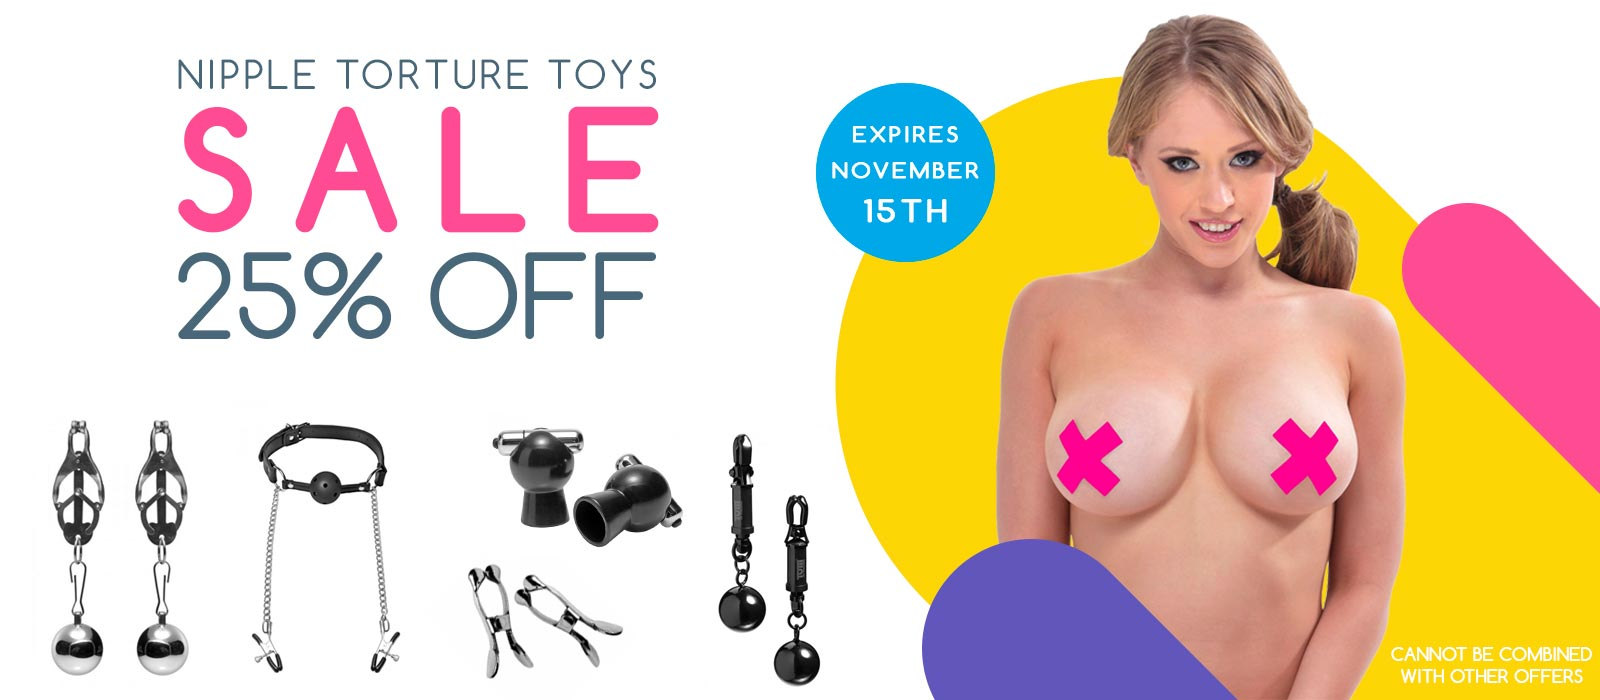 Nipple Tourture Sale! All nipple clamps and suction devices